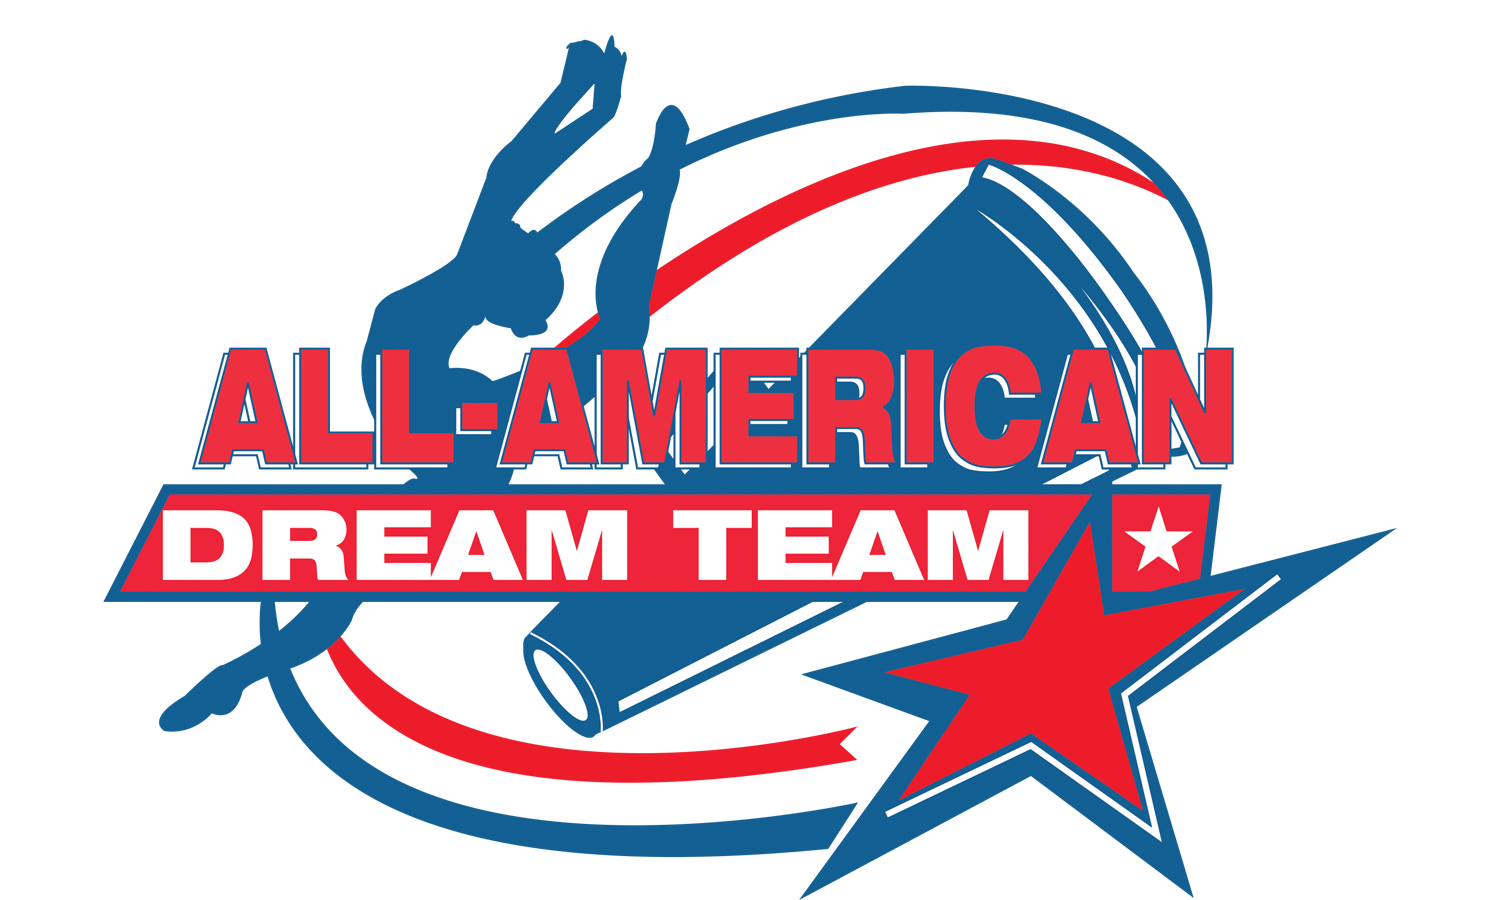 All-American Dream Team logo